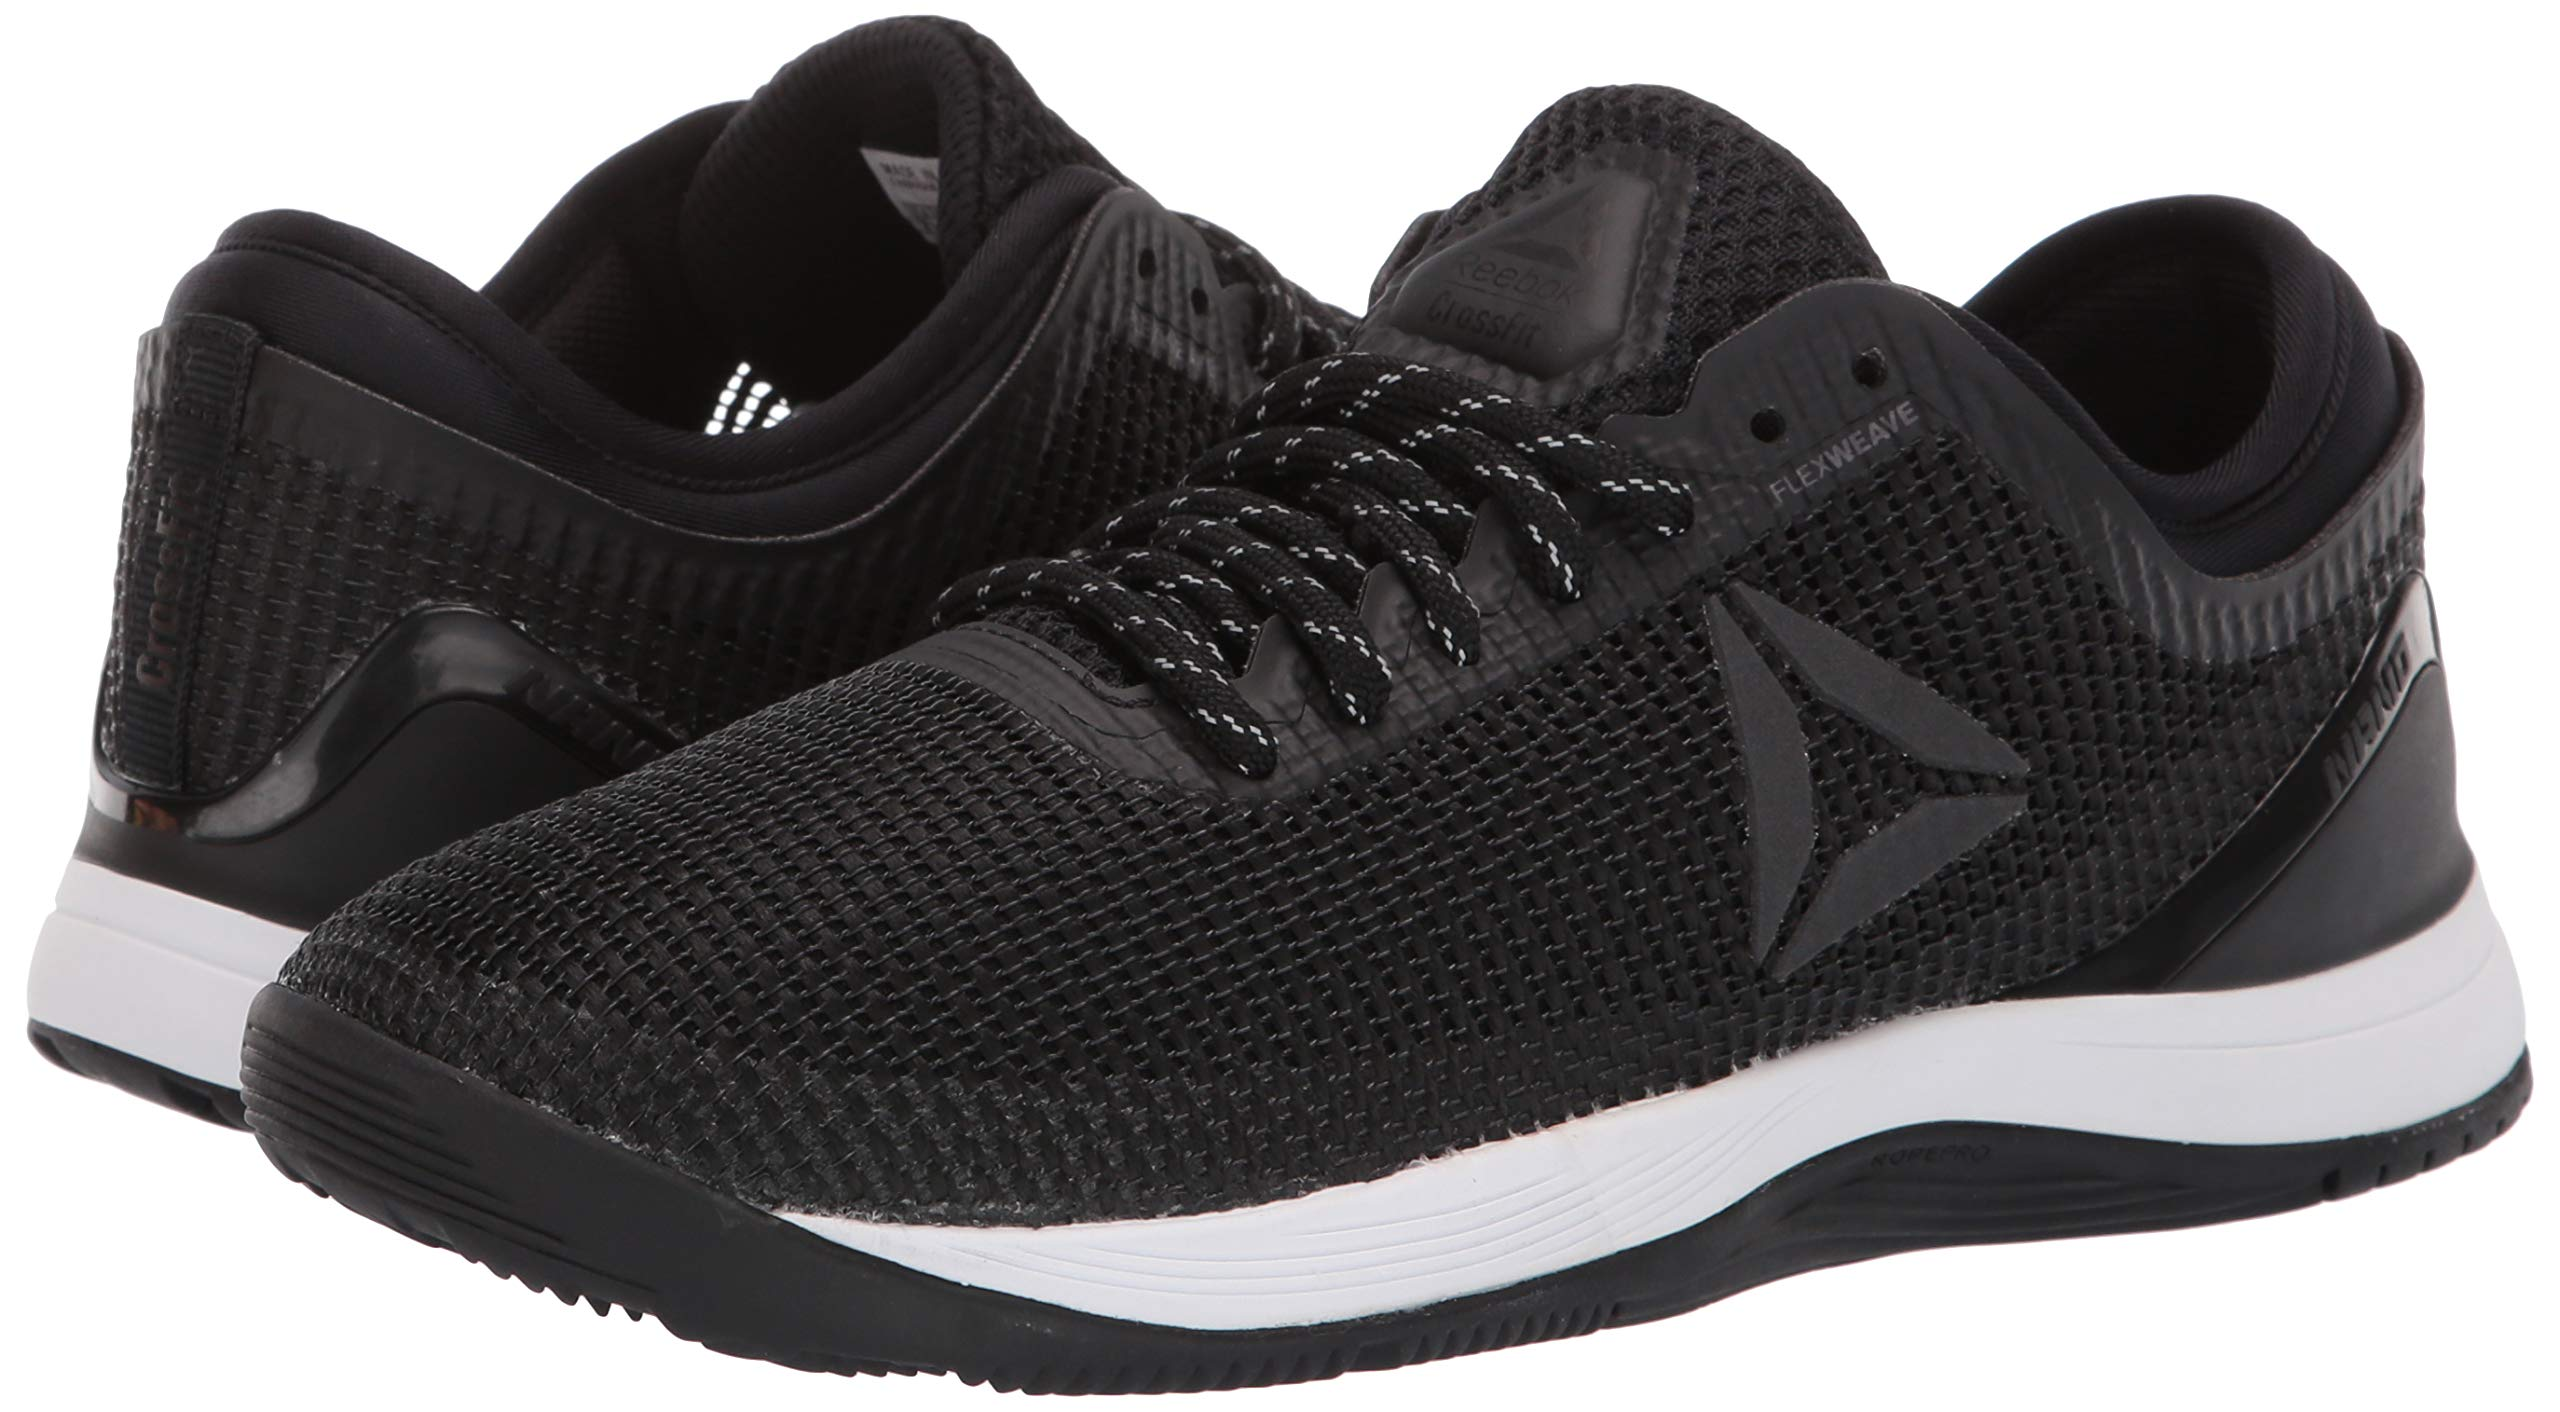 Reebok Women's CROSSFIT Nano 8.0 Flexweave Cross Trainer, Black/White, 5 M US by Reebok (Image #5)